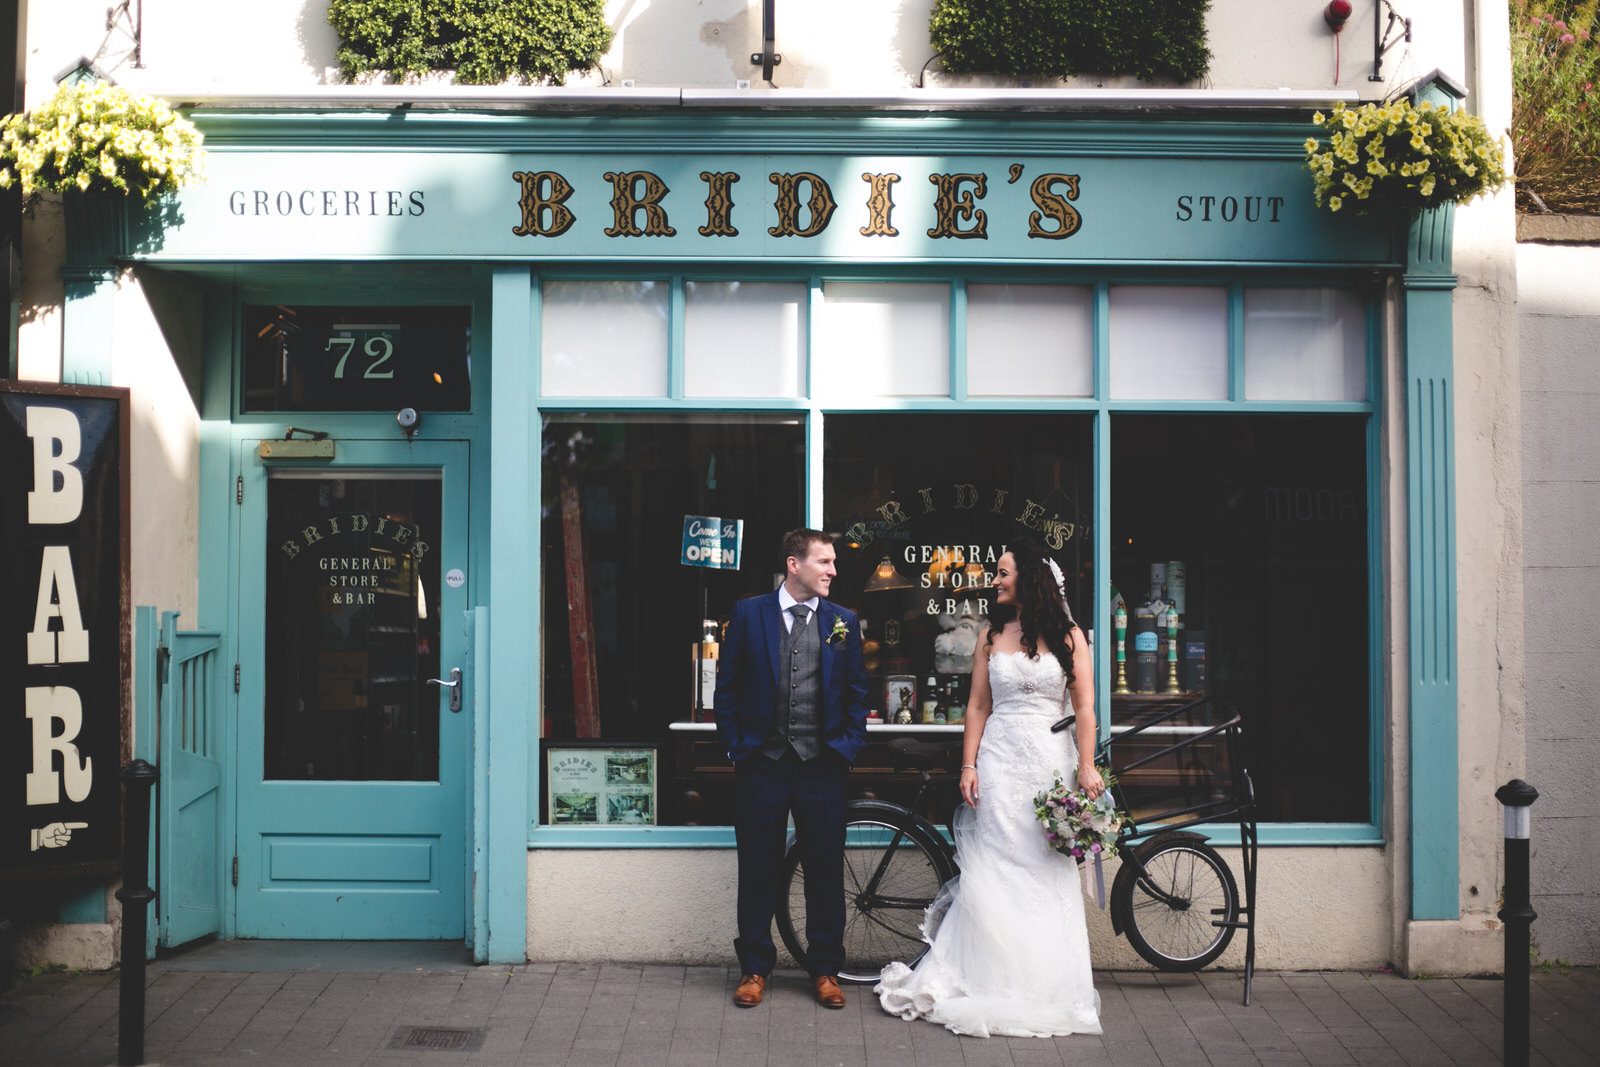 Bridie's grocery shop Kilkenny wedding portraits